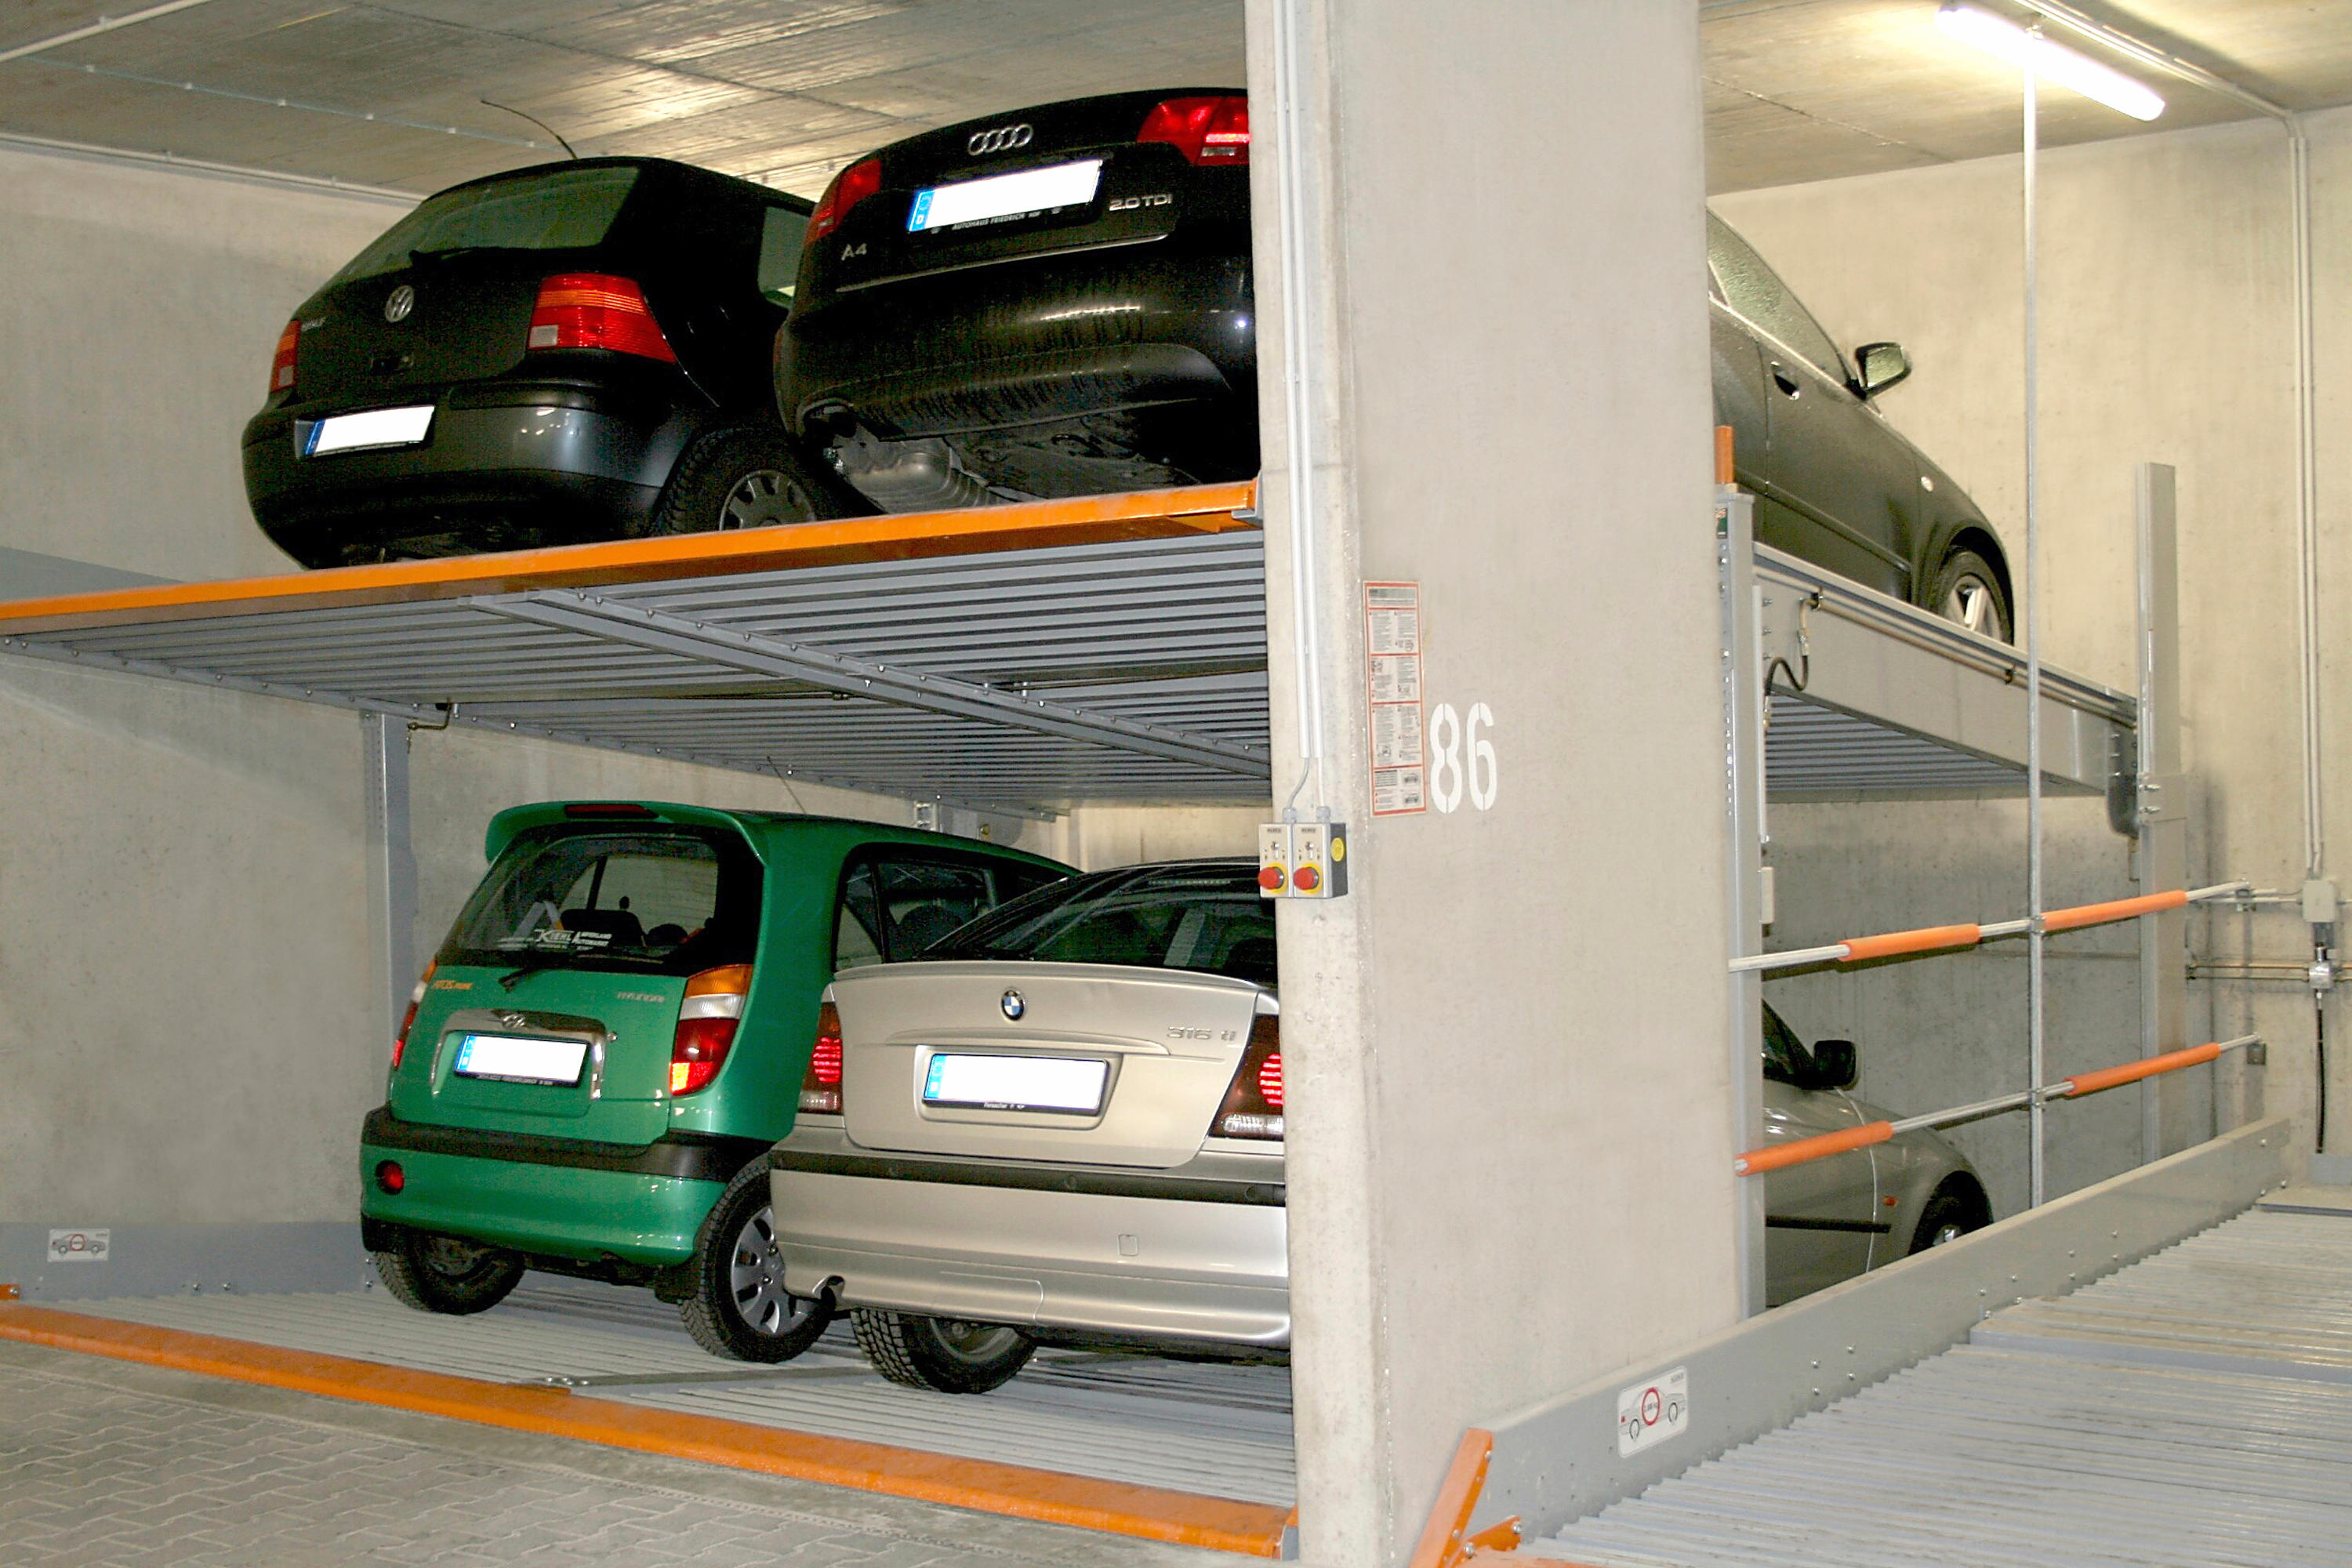 ... MultiVario 2082 by KLAUS Multiparking | Car parking systems ...